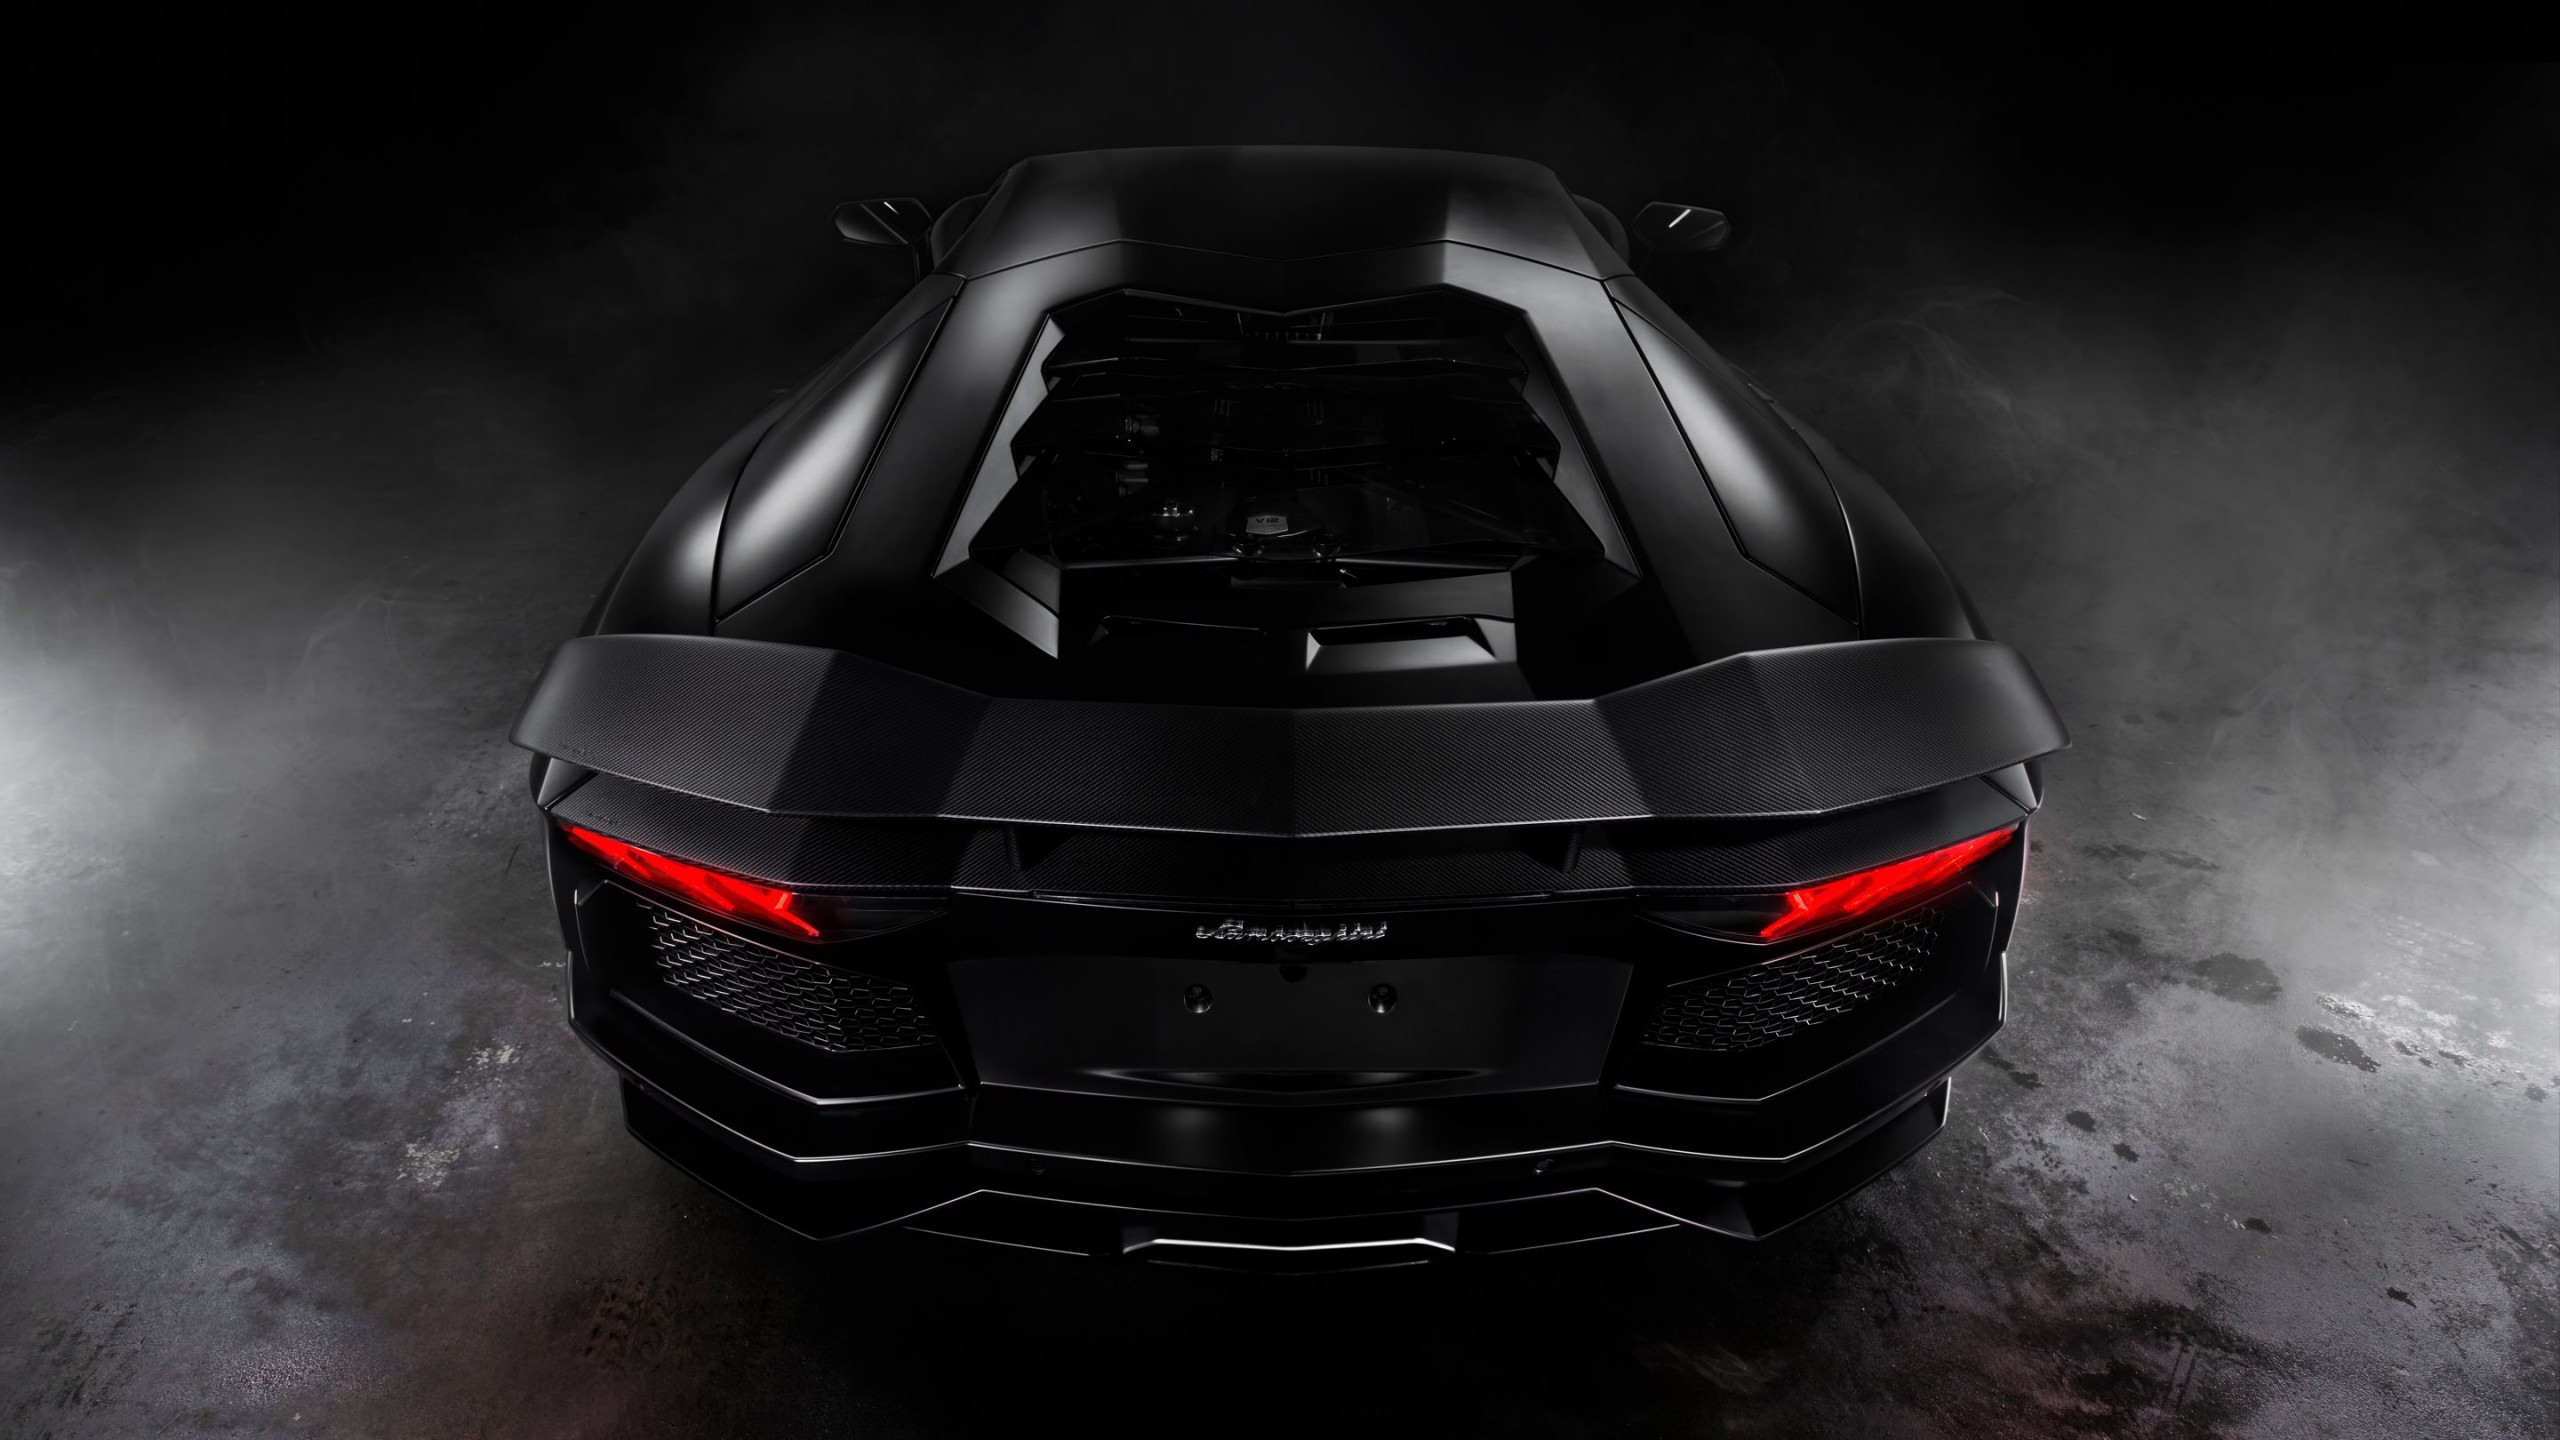 Lamborghini Aventador Matte Black Wallpaper for Social Media YouTube Channel Art